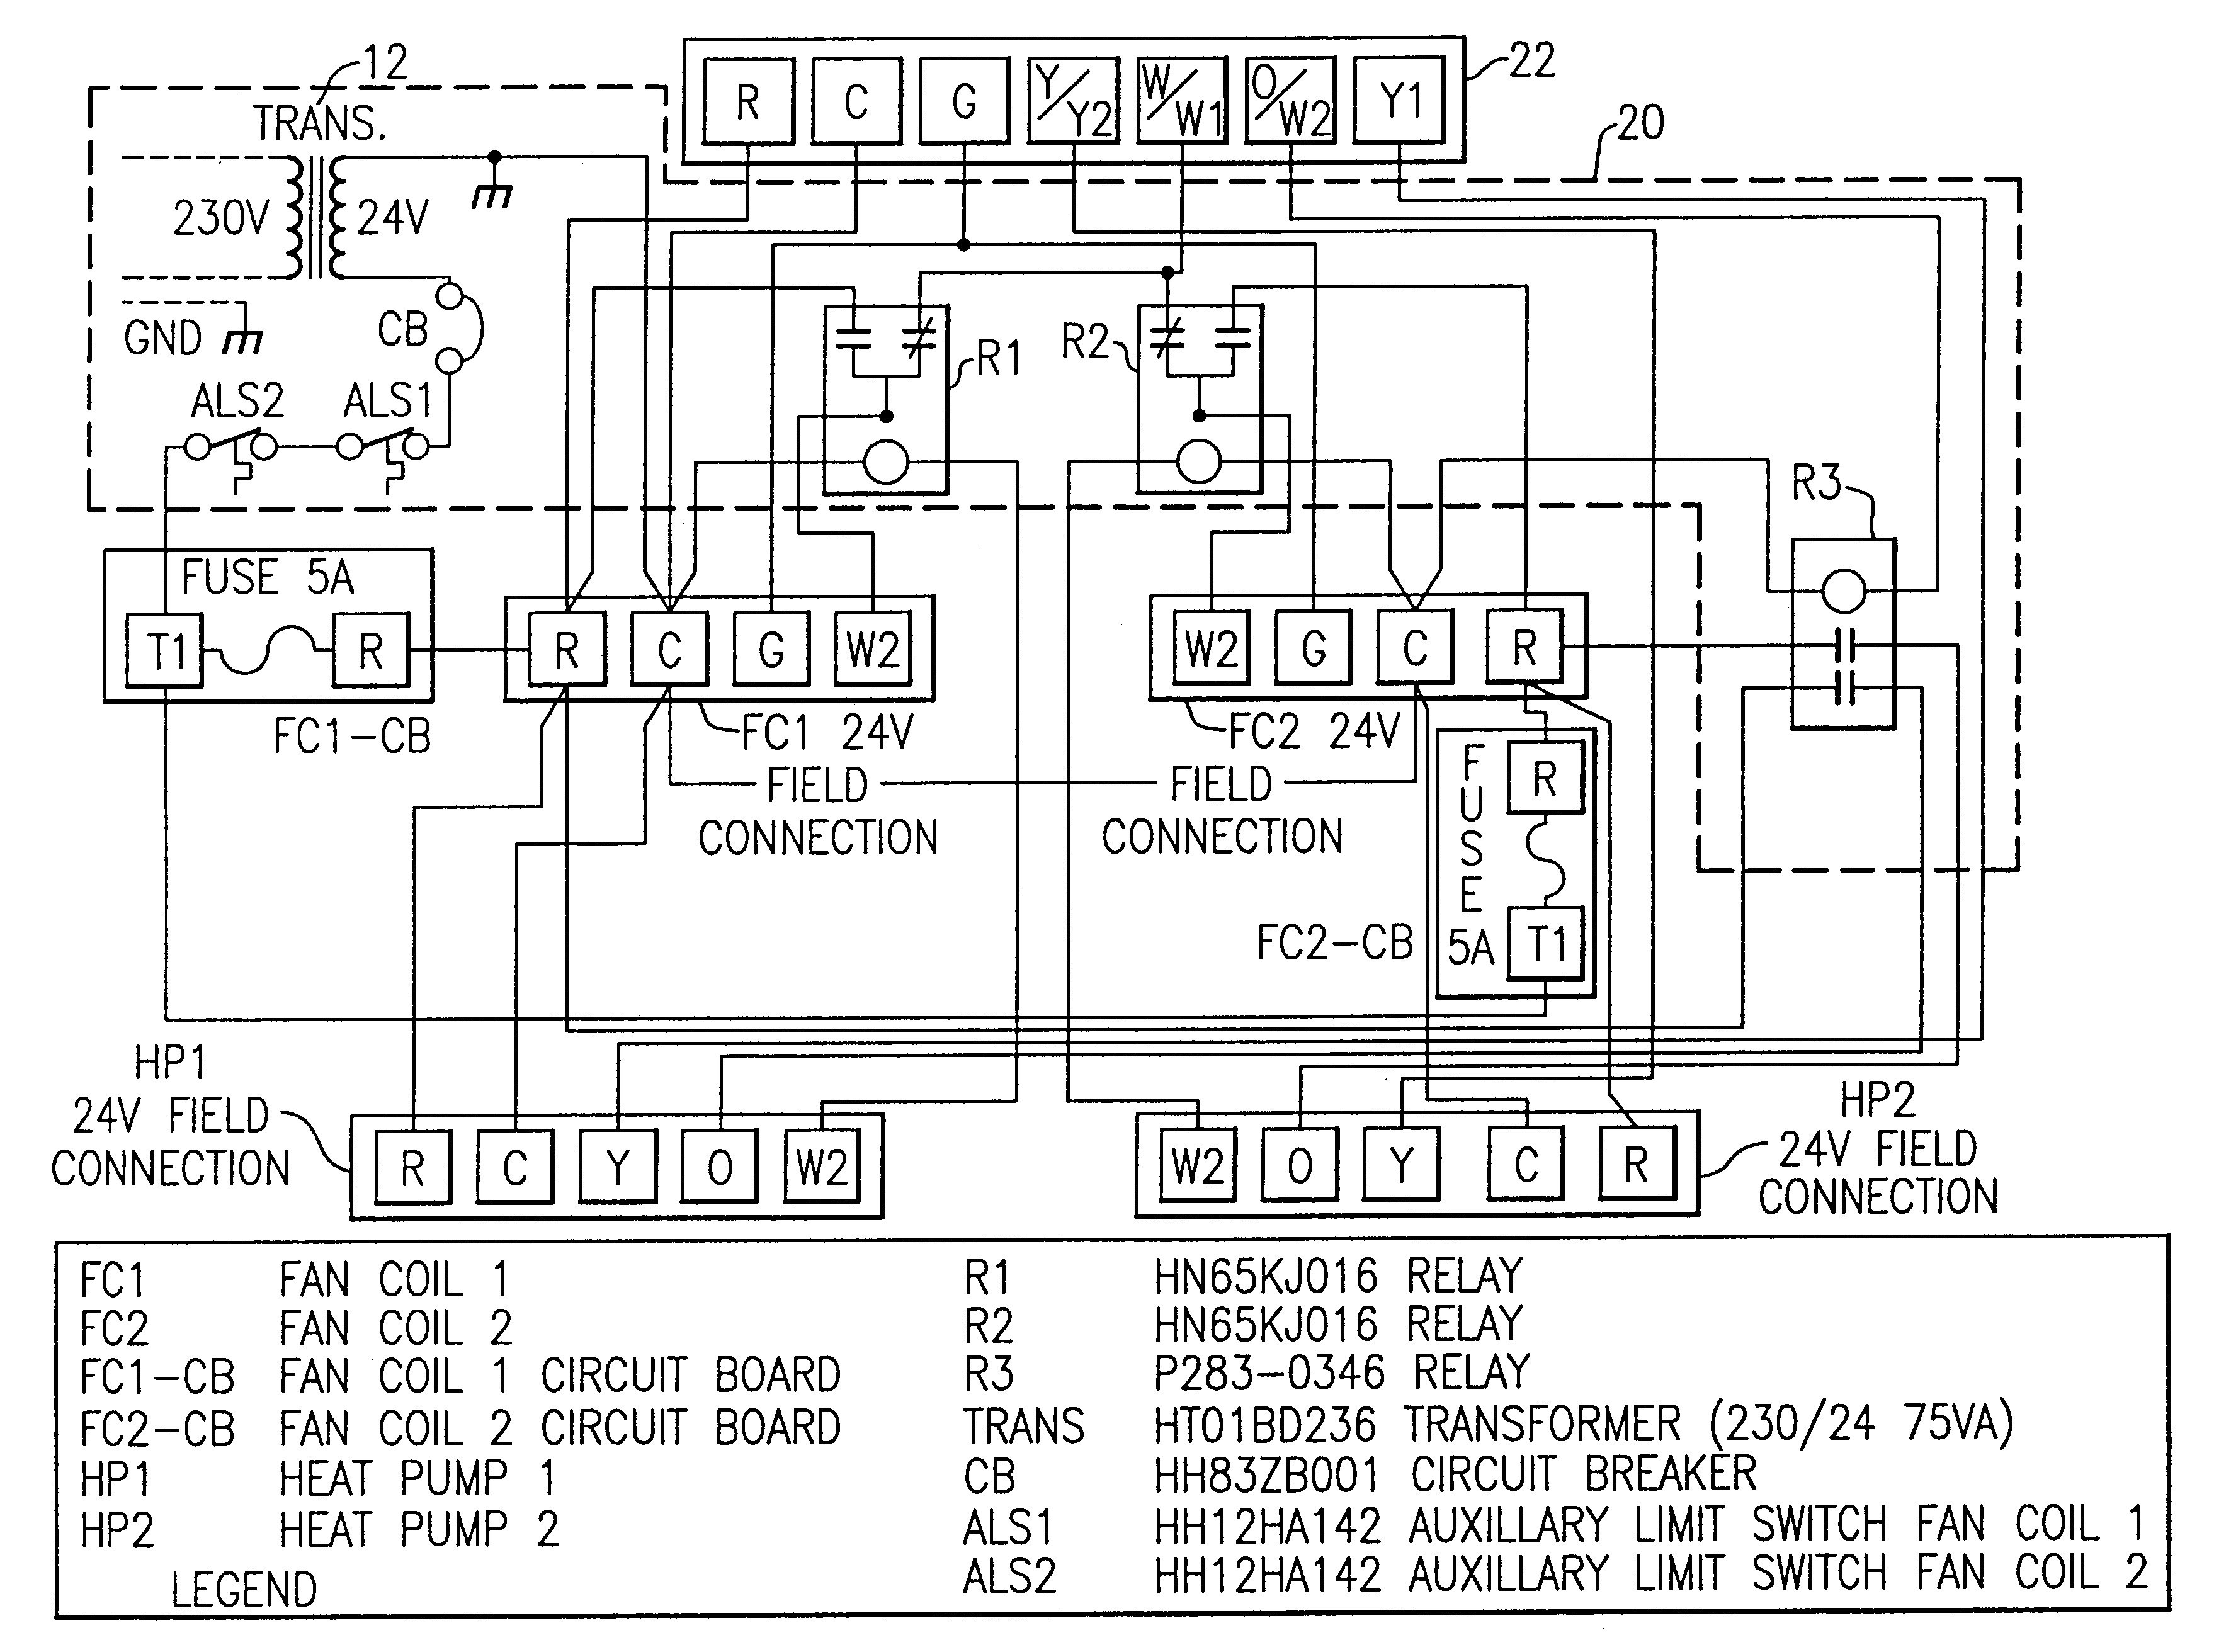 wiring diagrams xbee temperature wiring diagrams global wiring diagrams xbee temperature [ 3543 x 2624 Pixel ]